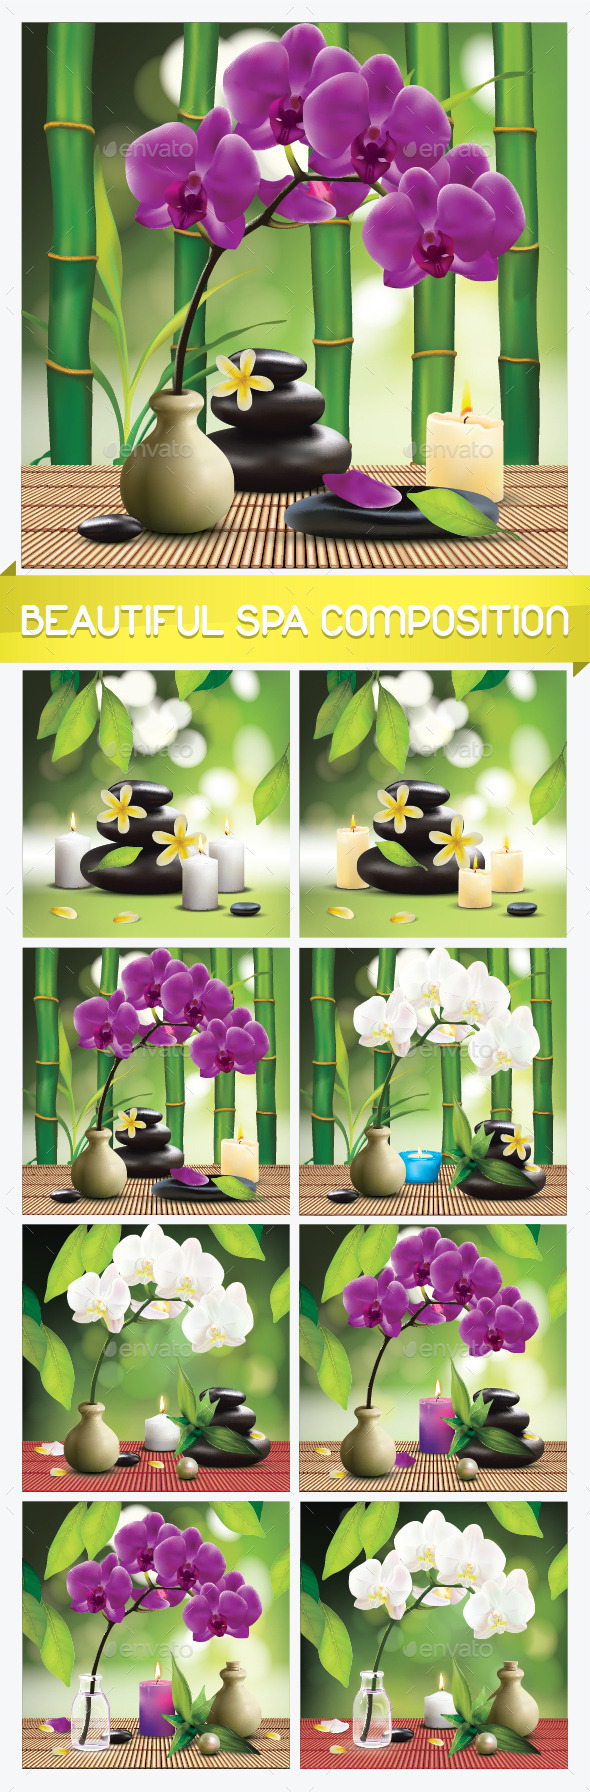 8 Spa Compositions with Orchid Flower - Miscellaneous Vectors